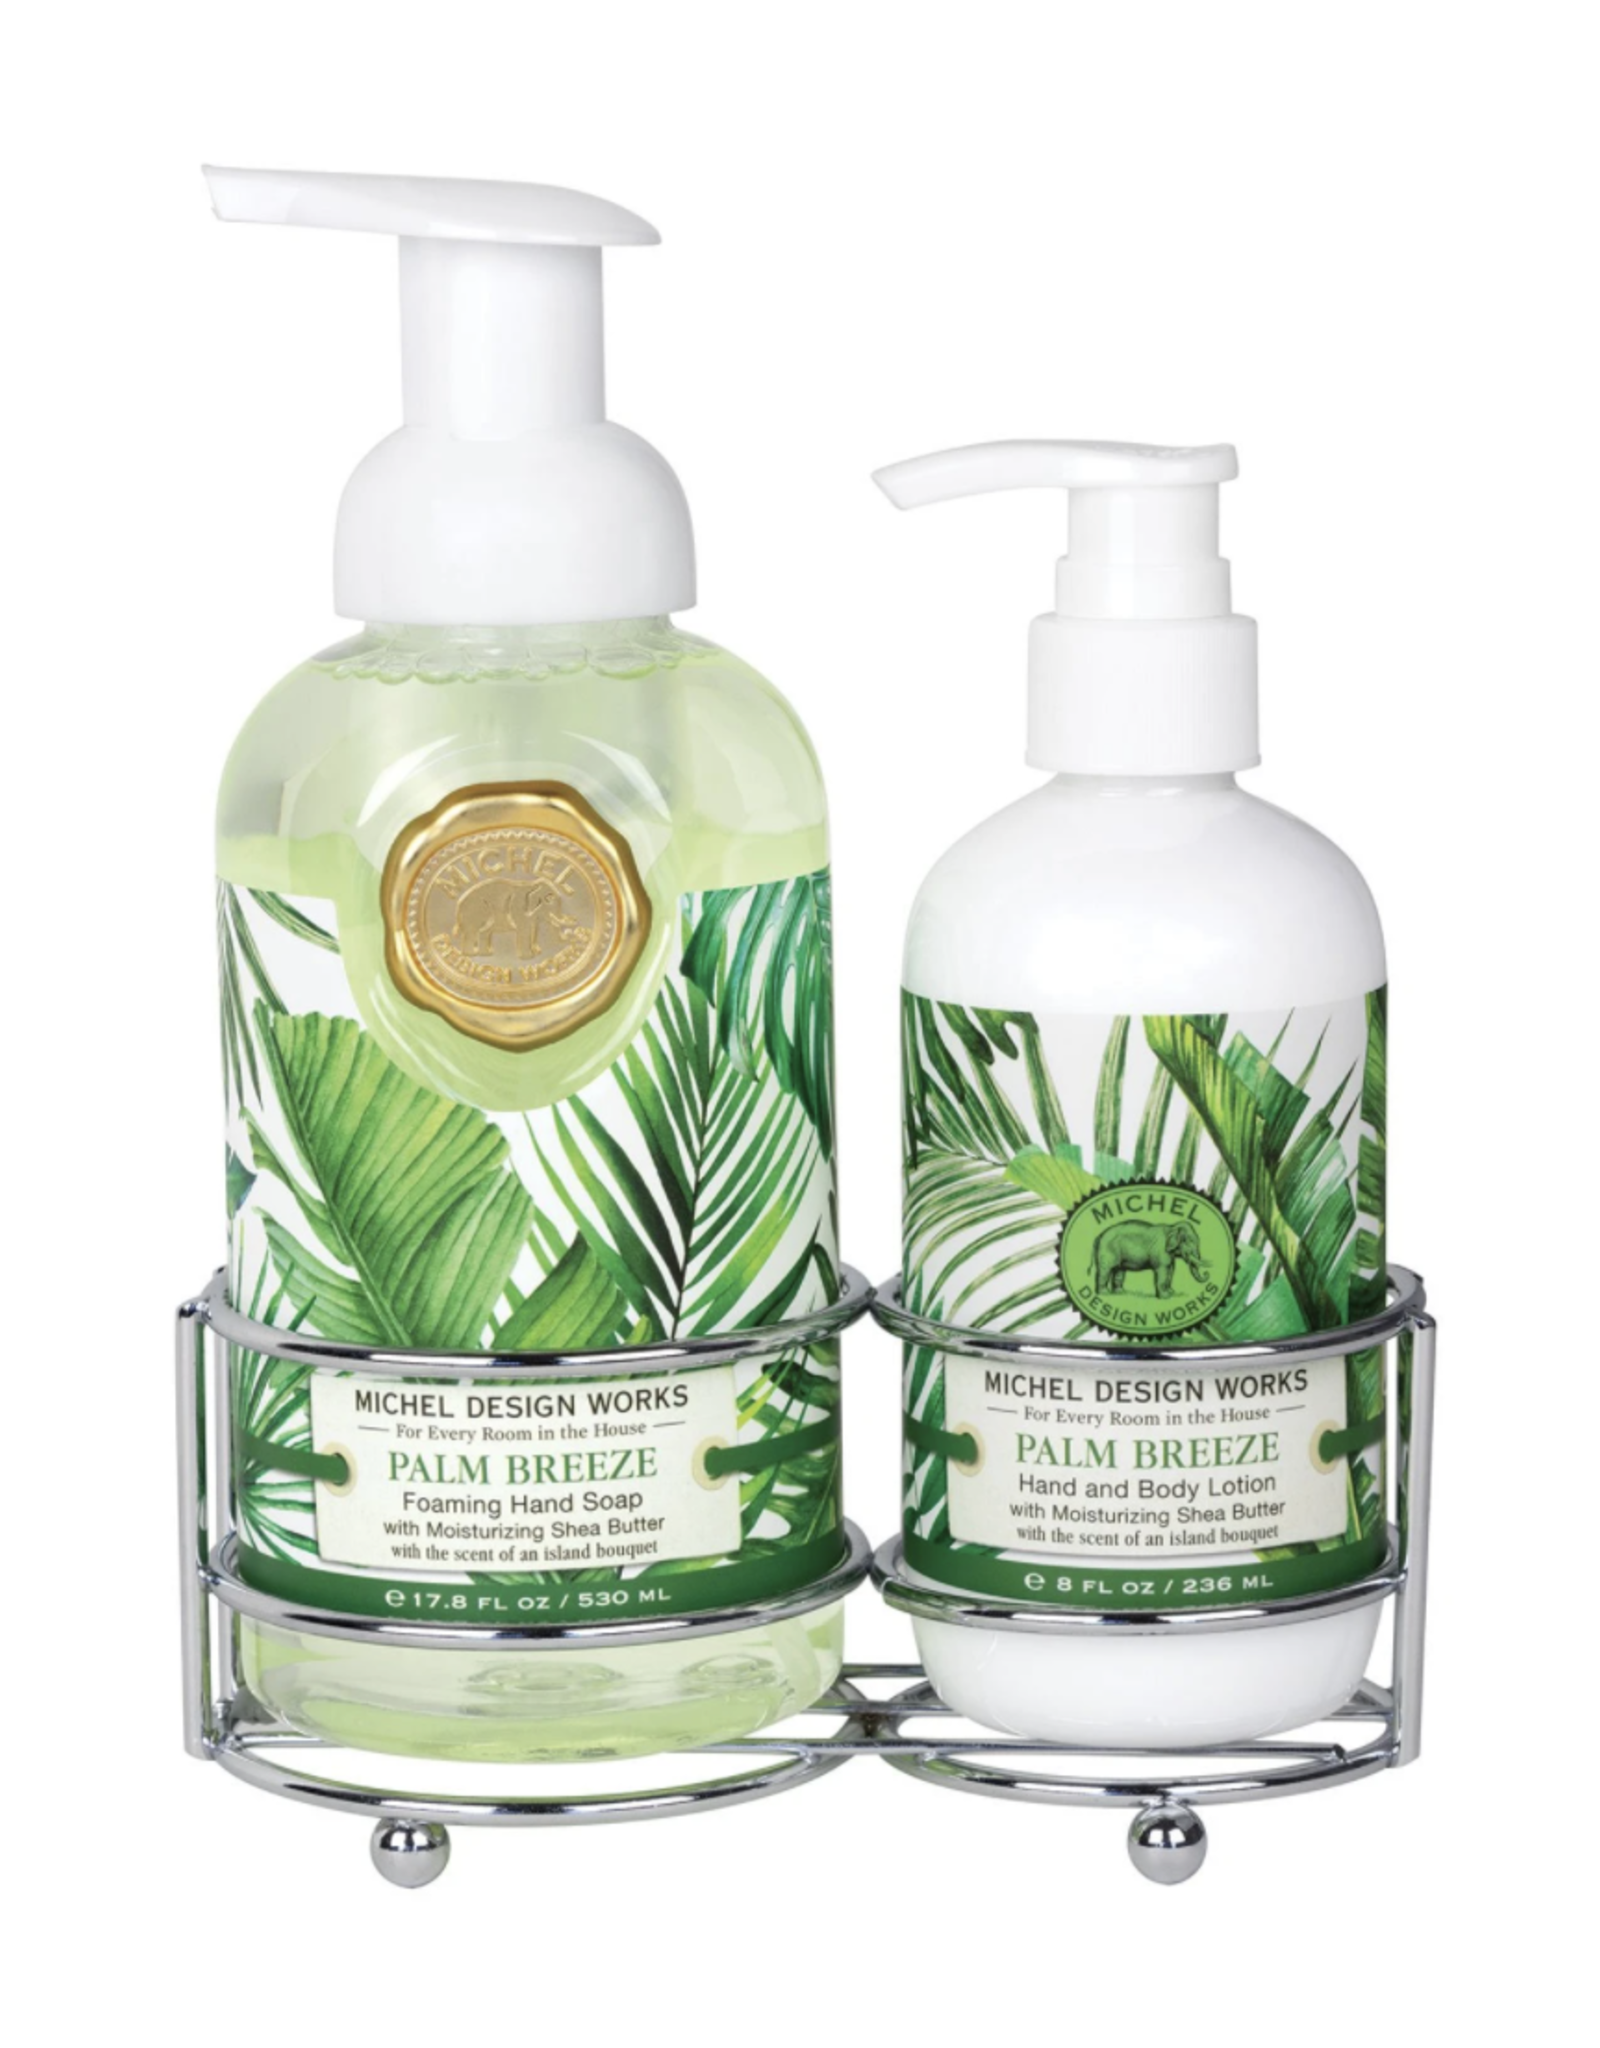 Michel Design Works Palm Breeze Hand Care Caddy